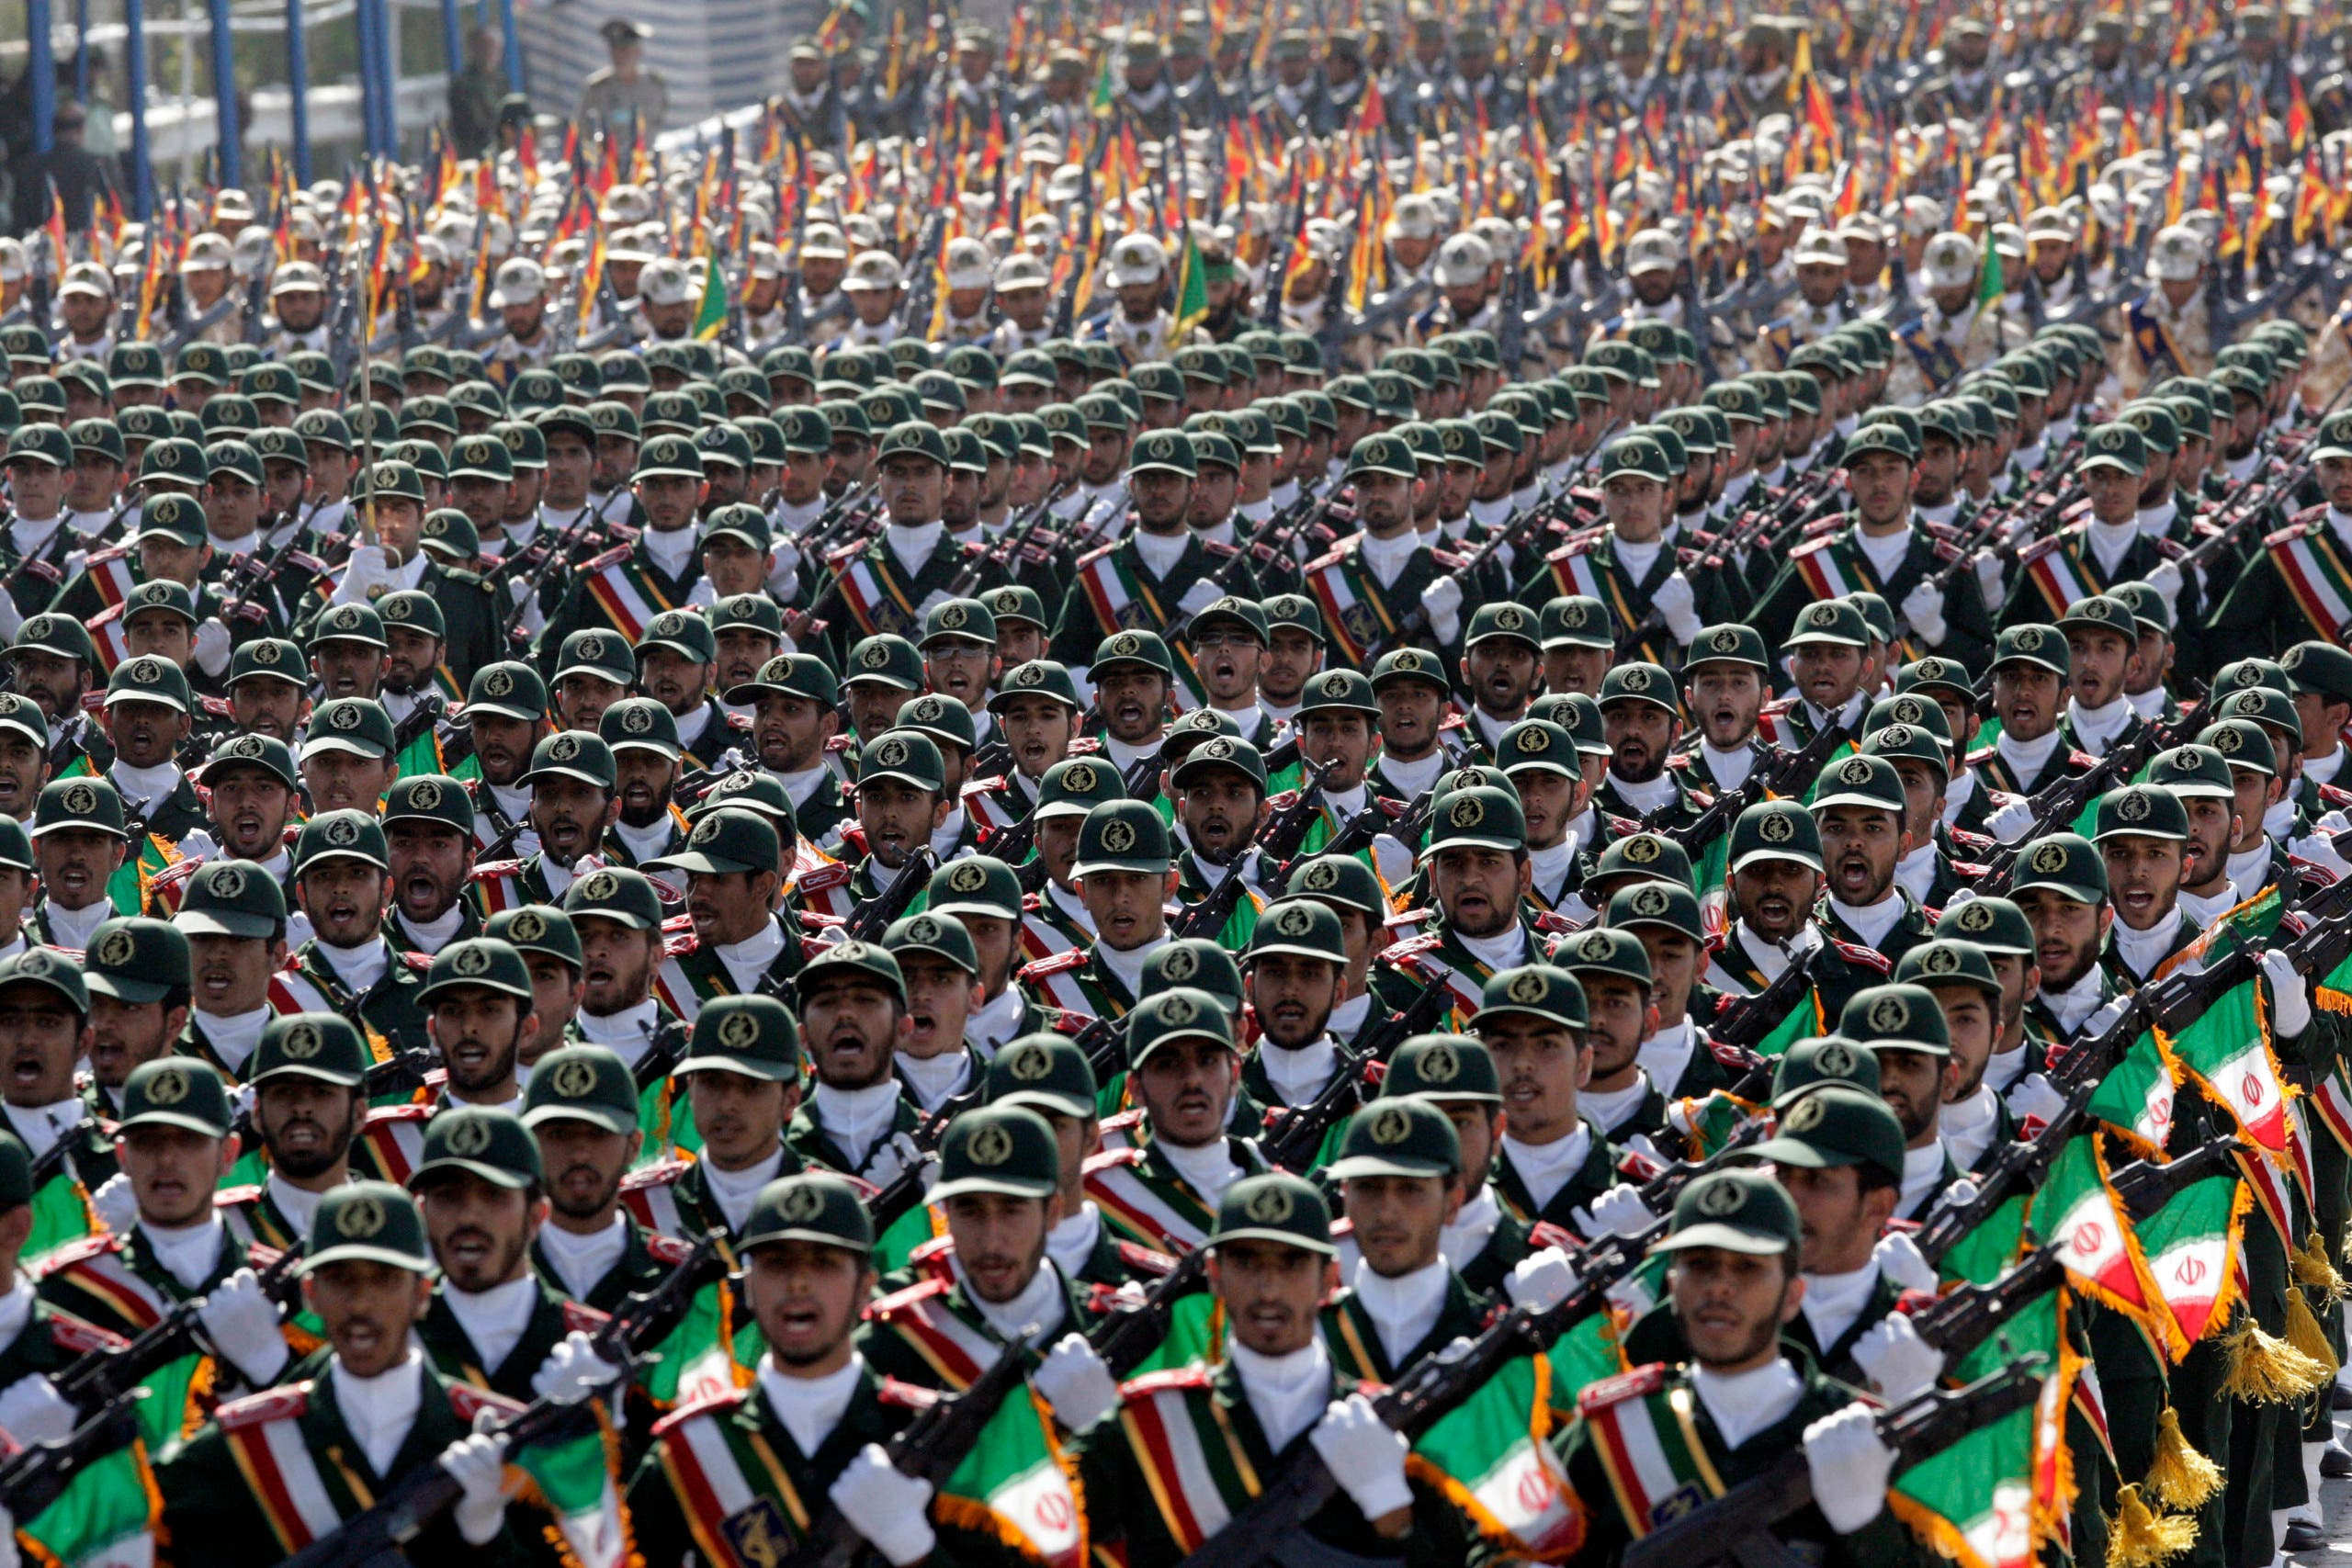 Iran's Revolutionary Guard troops march, during a military parade commemorating the start of the Iraq-Iran war 32 years ago, in front of the mausoleum of the late revolutionary leader Ayatollah Khomeini, just outside Tehran, Iran, Friday, Sept. 21, 2012. (AP)